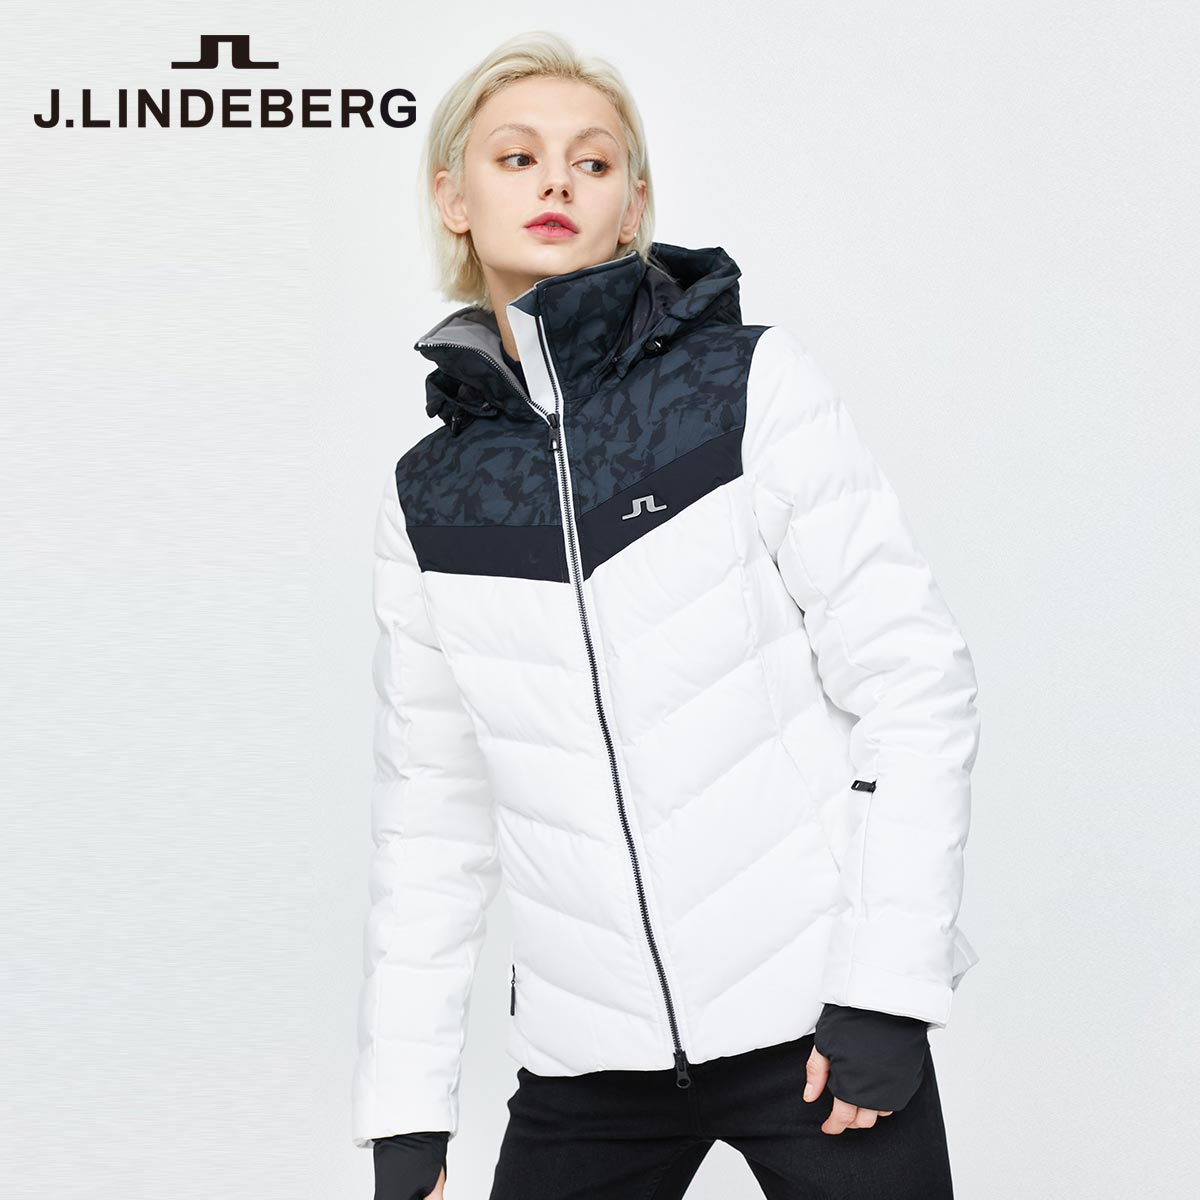 Mall the same J.LINDEBERG Jinlindberg autumn/winter new fashion ski suit short down jacket girl